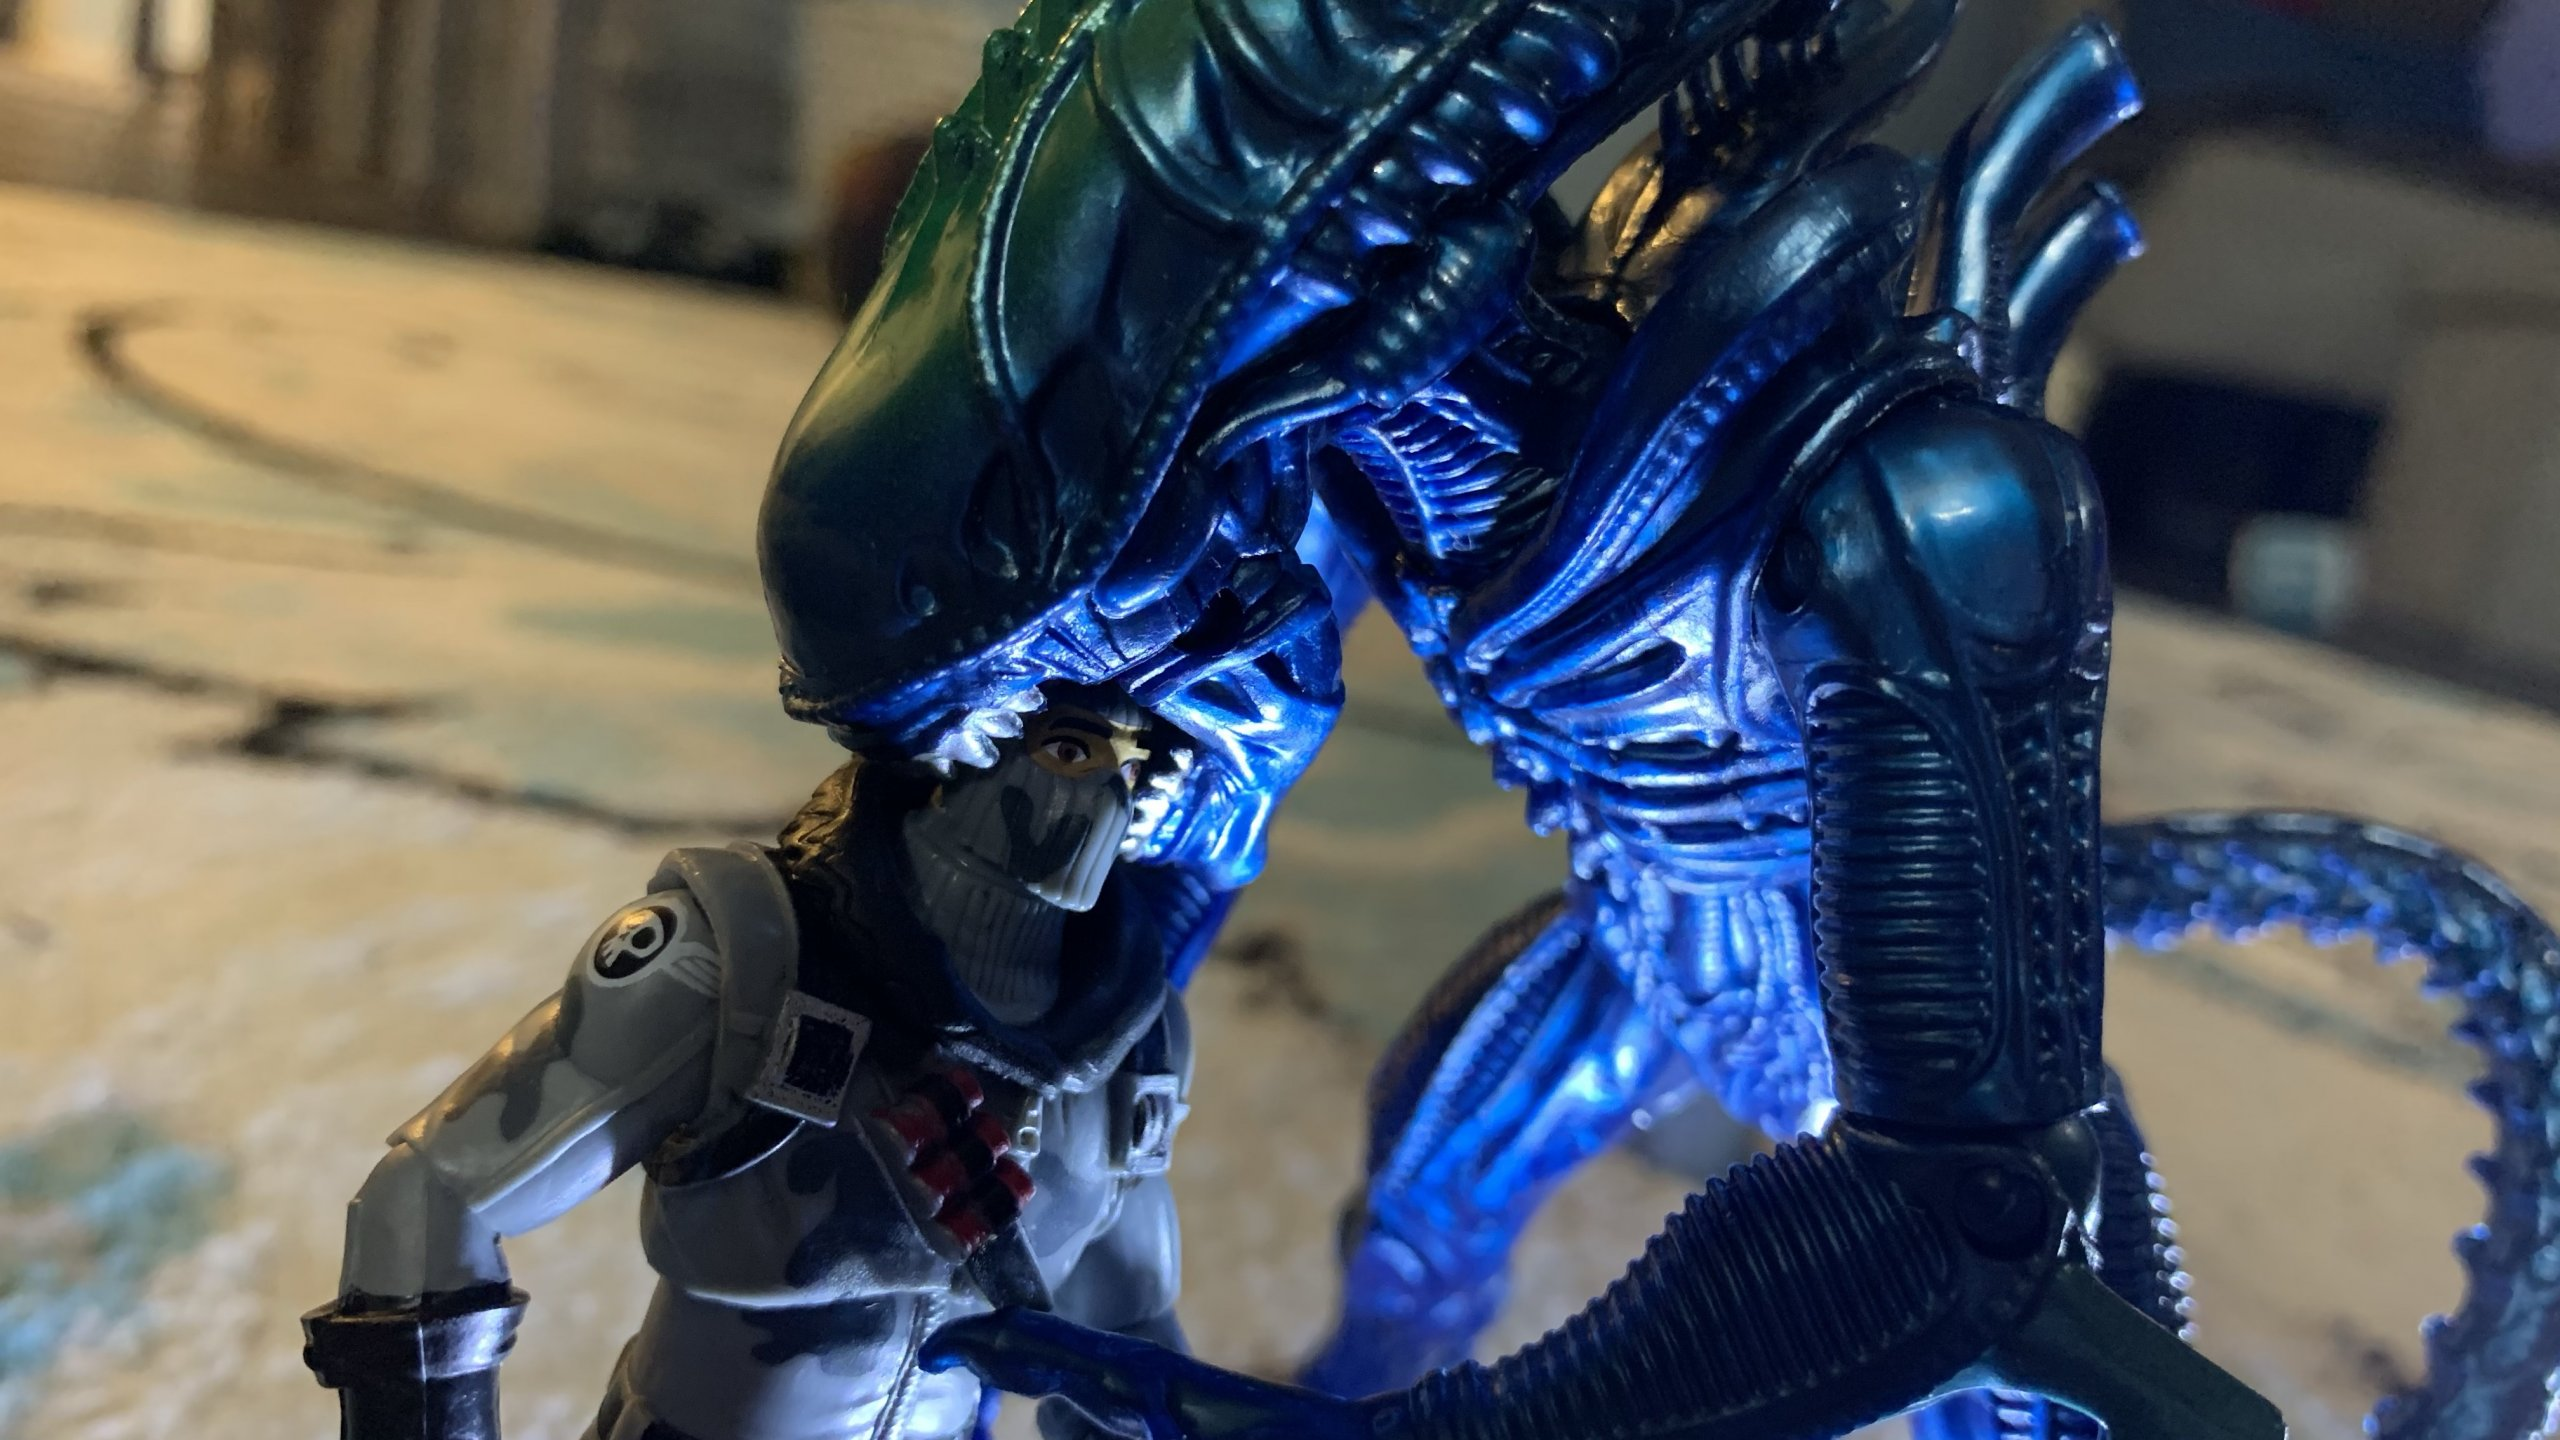 Lanard Toys Alien Warrior Xeno vs Jazwares Fortnite Havoc